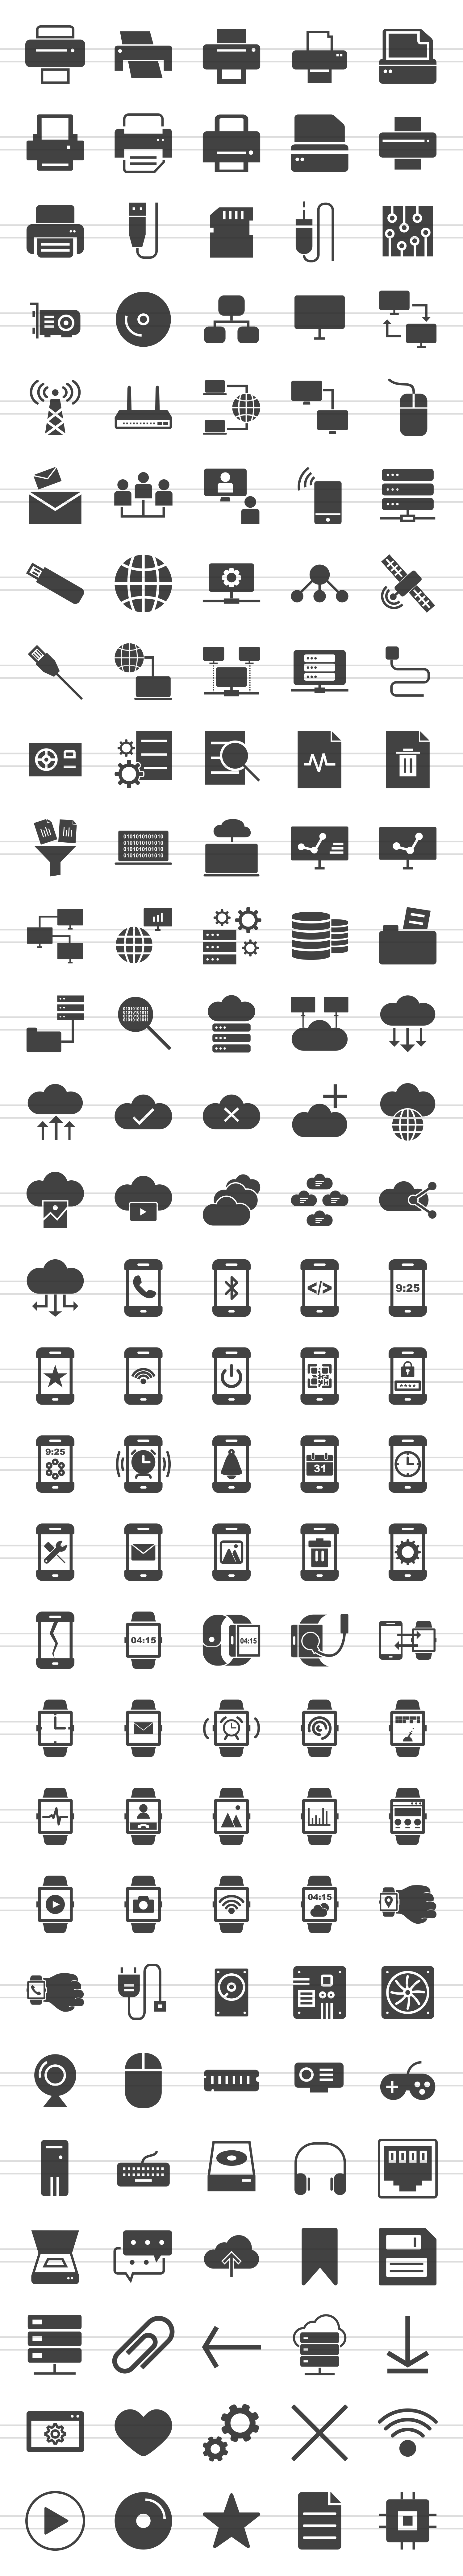 166 Hardware Glyph Icons example image 2